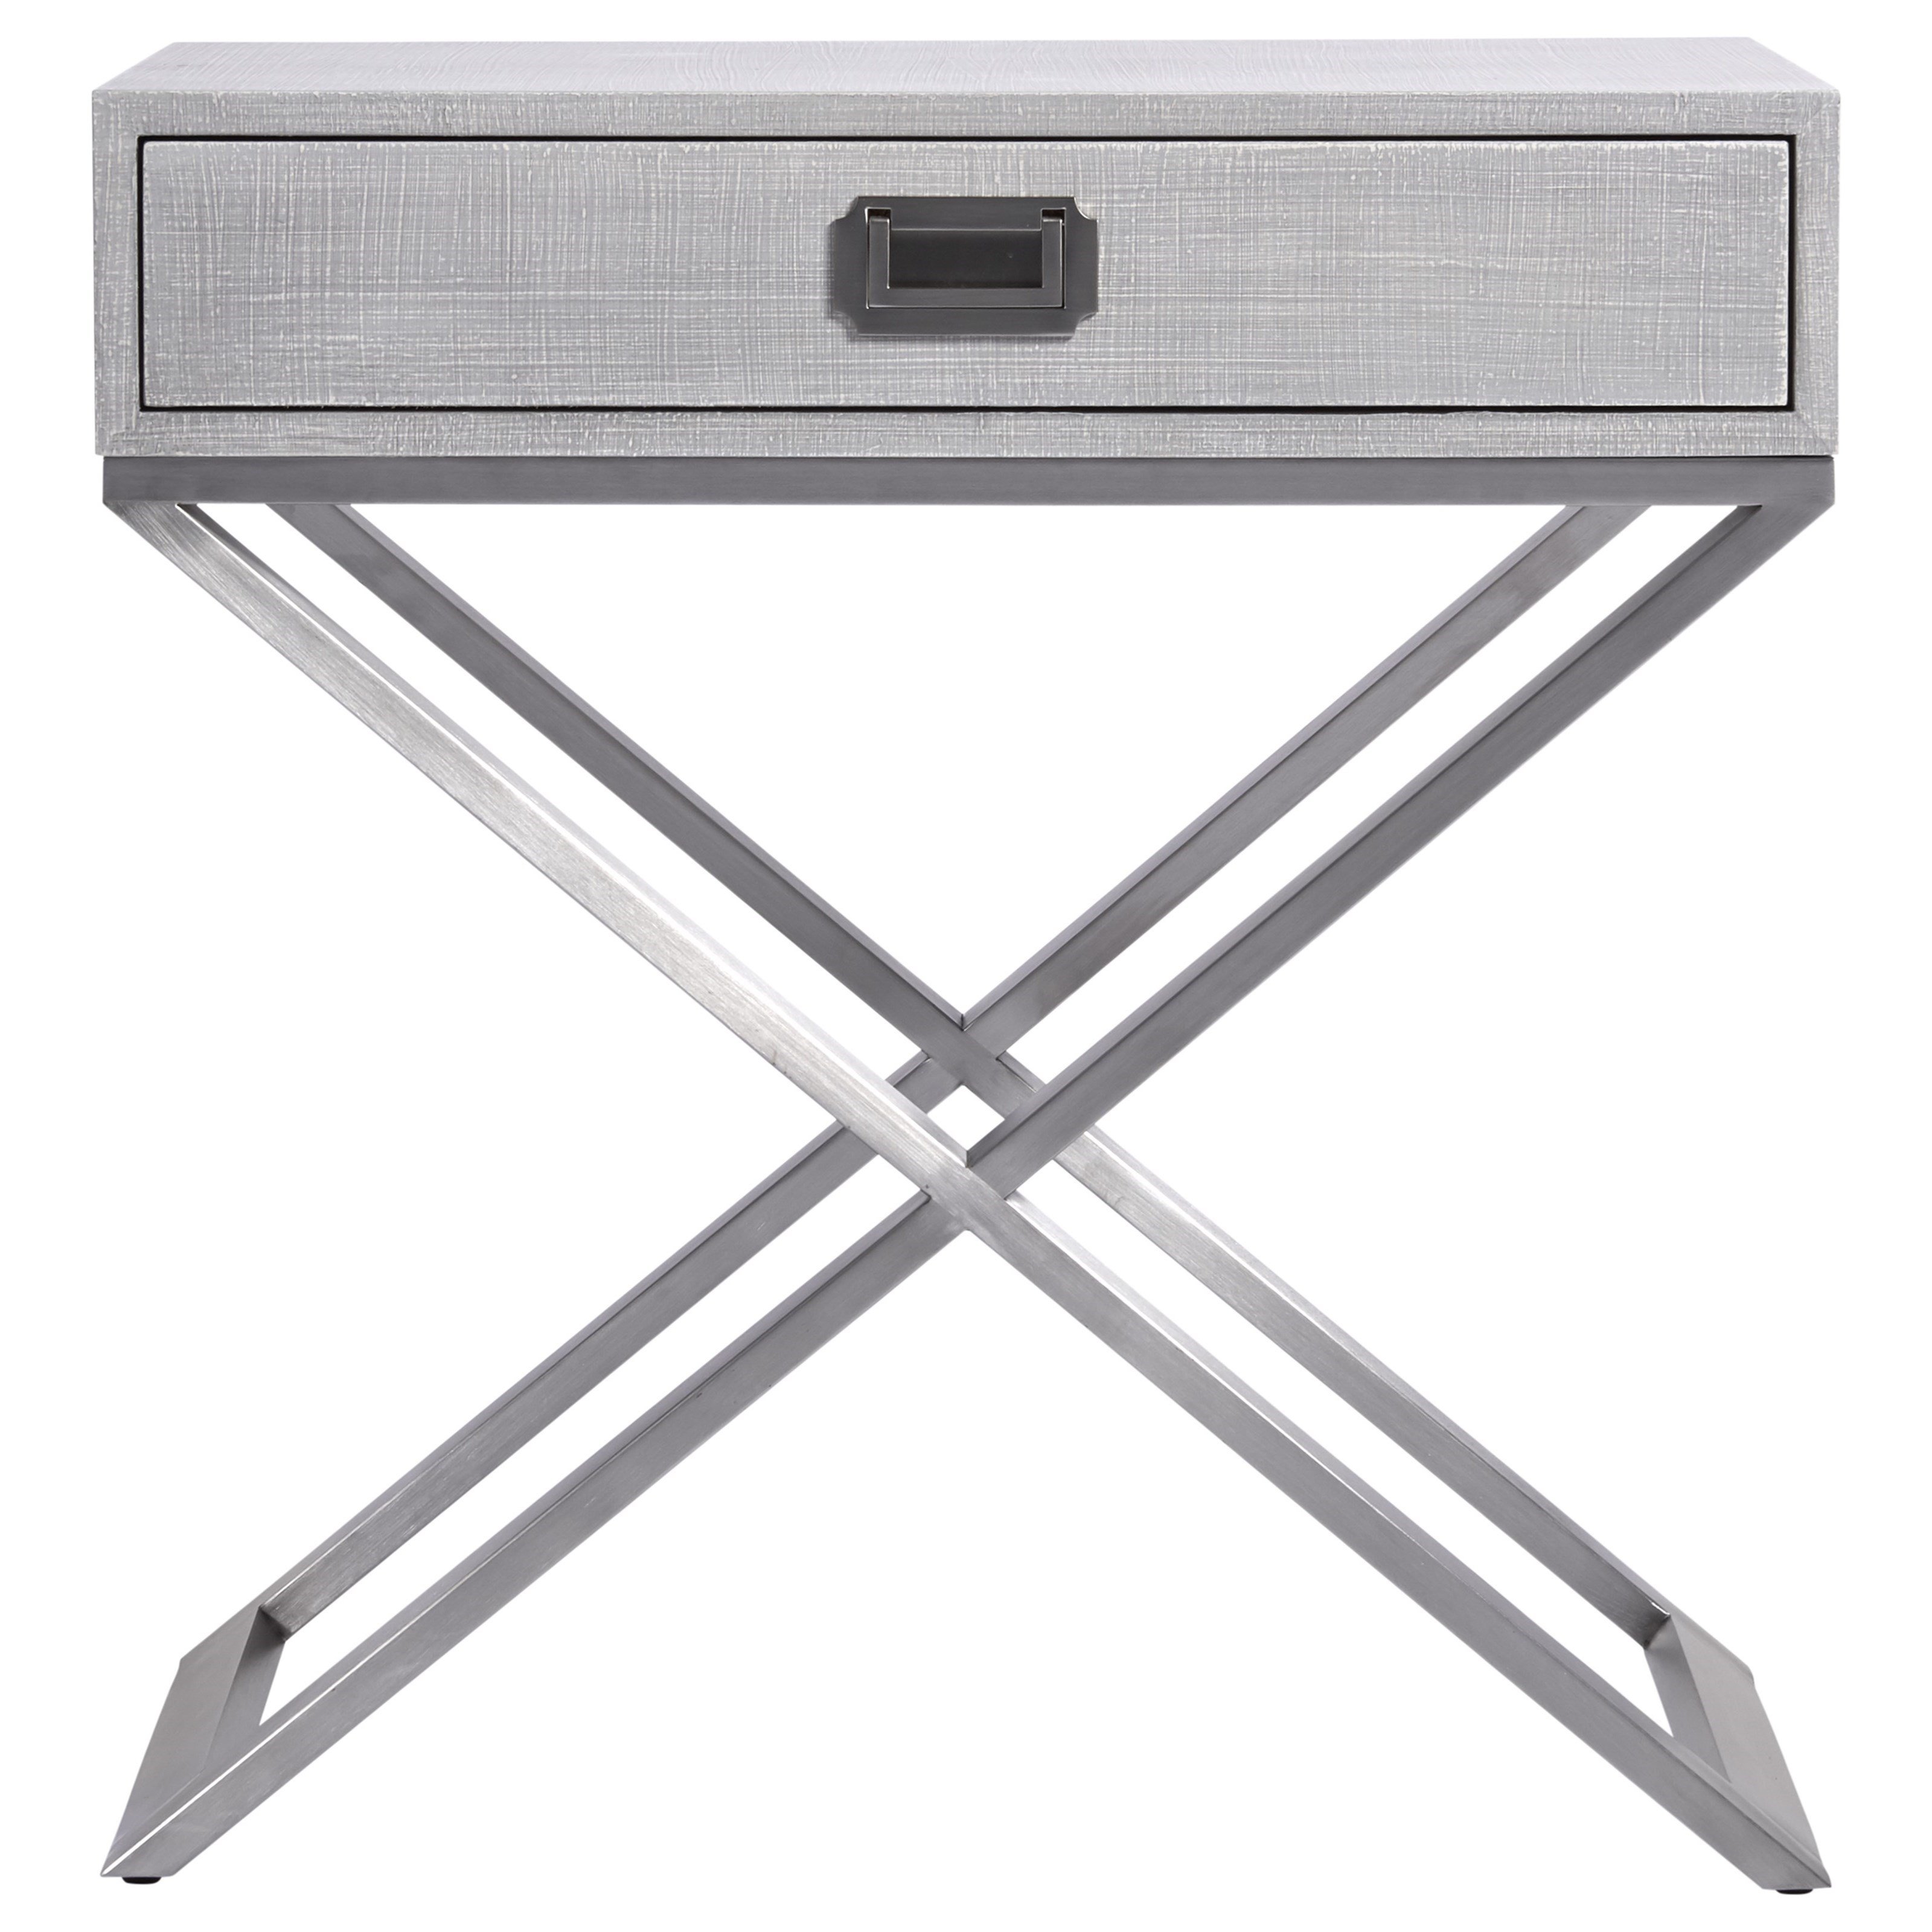 Coastal Living Home - Escape Nightstand by Universal at Baer's Furniture